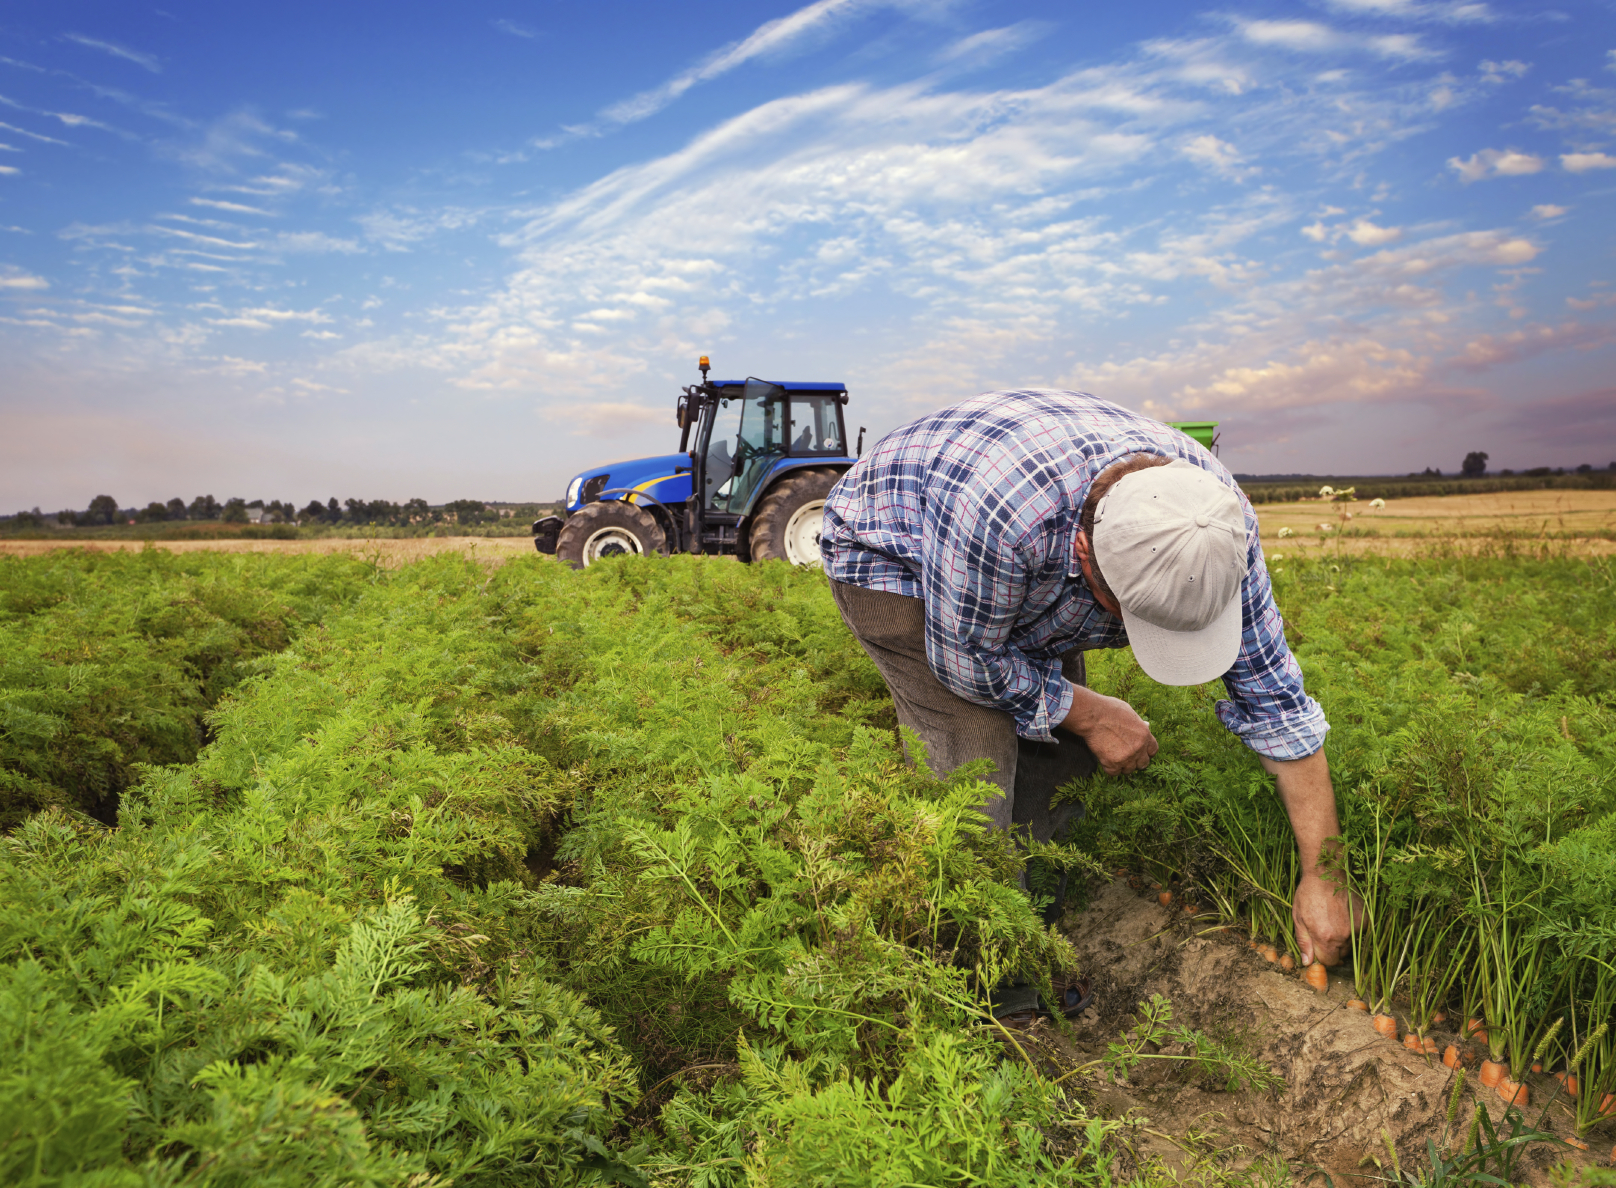 iStock_farmerinfield_Medium.jpg